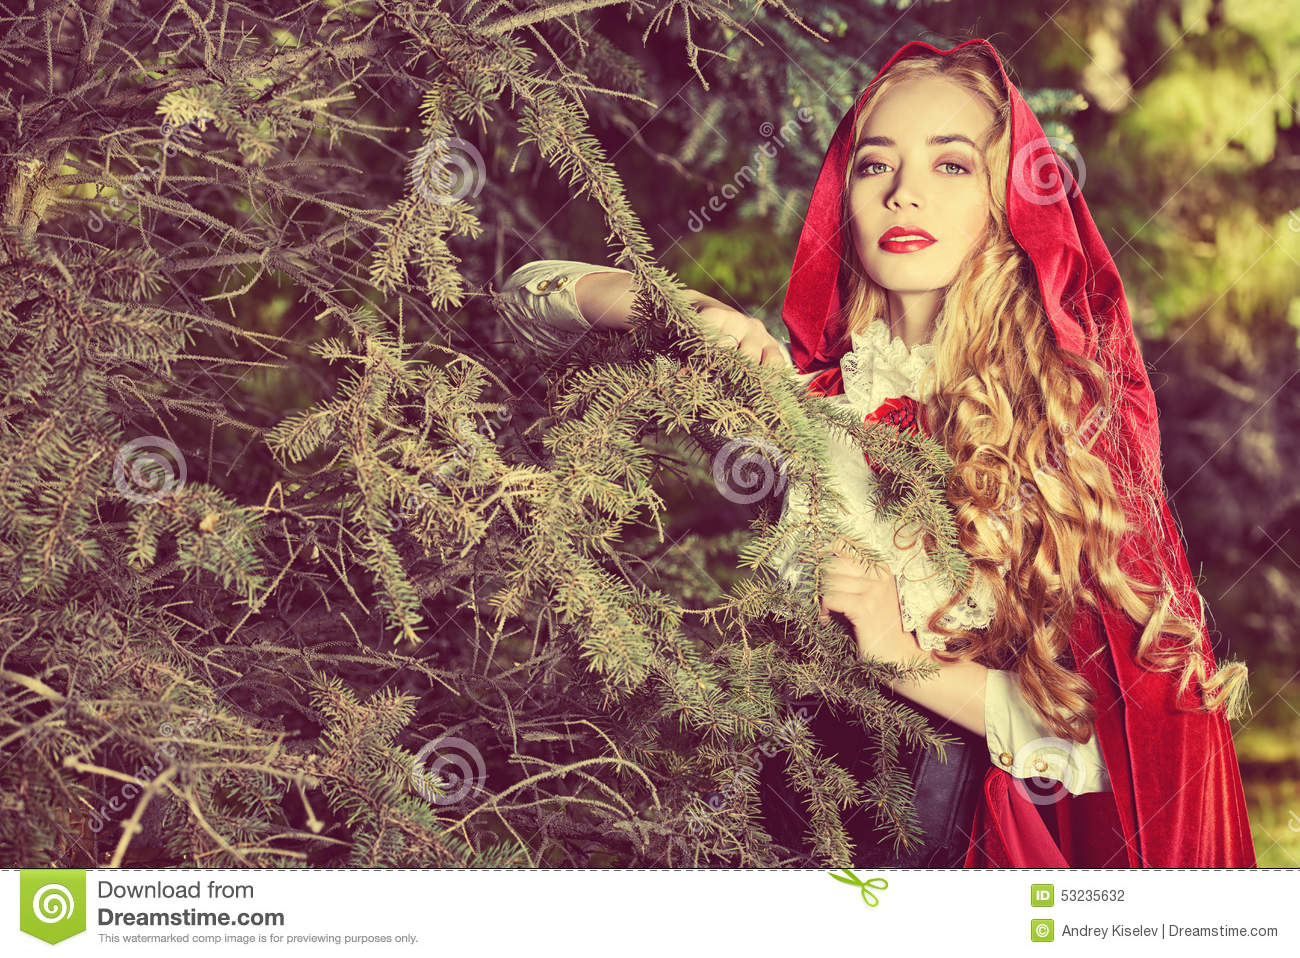 Garden fairytale stock photo. Image of countryside, glamour - 53235632